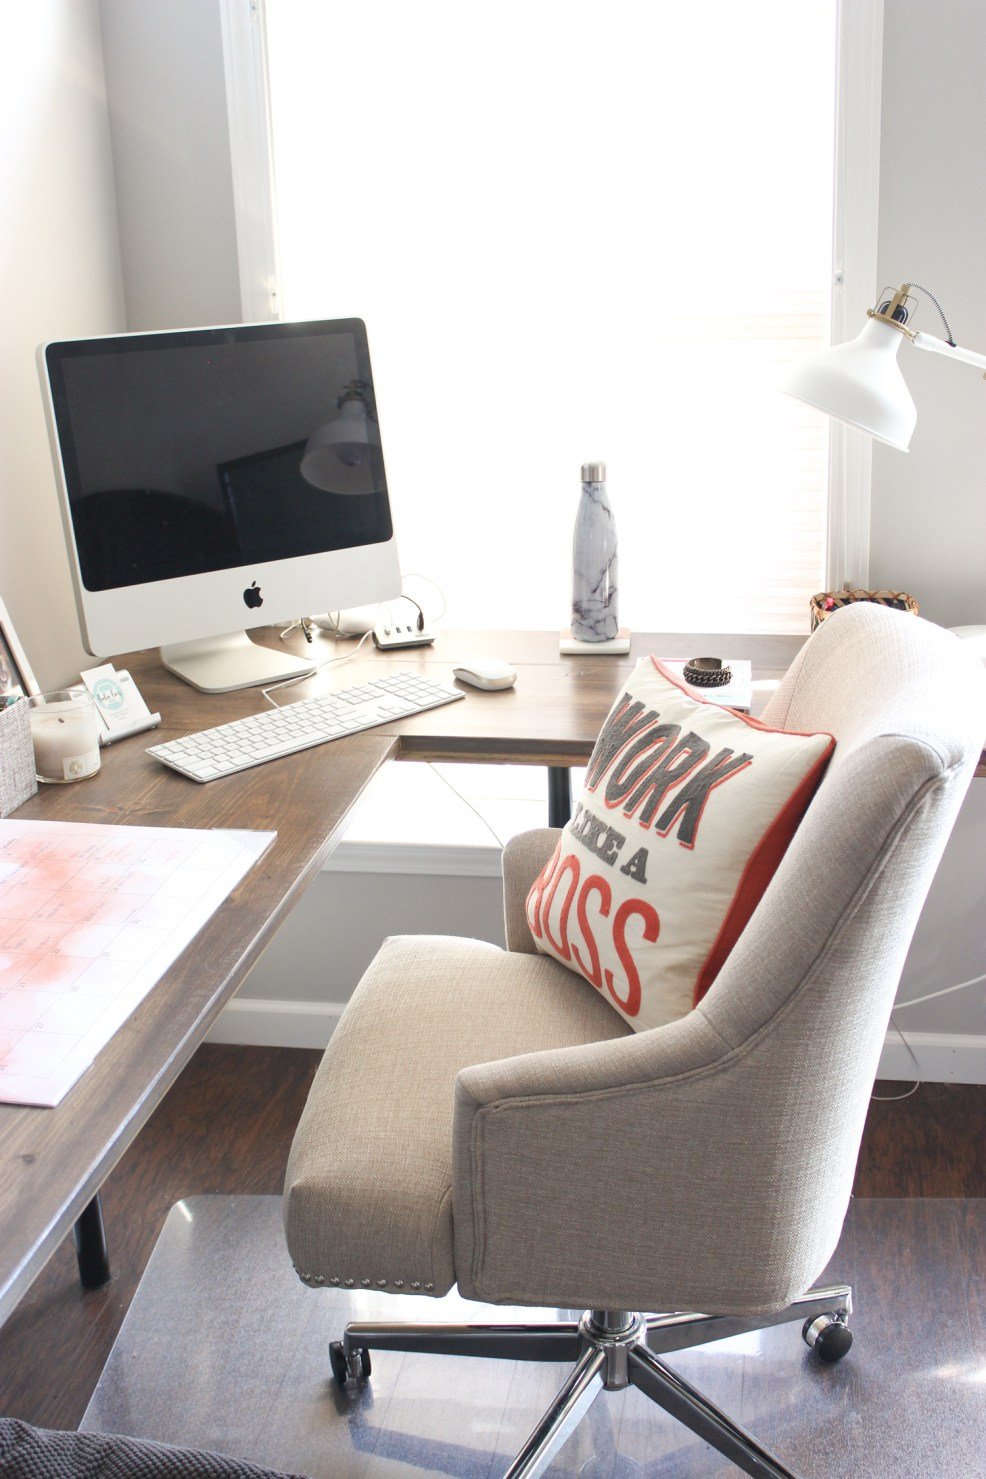 Work From Home Tips and Tricks | Just Peachy Blog